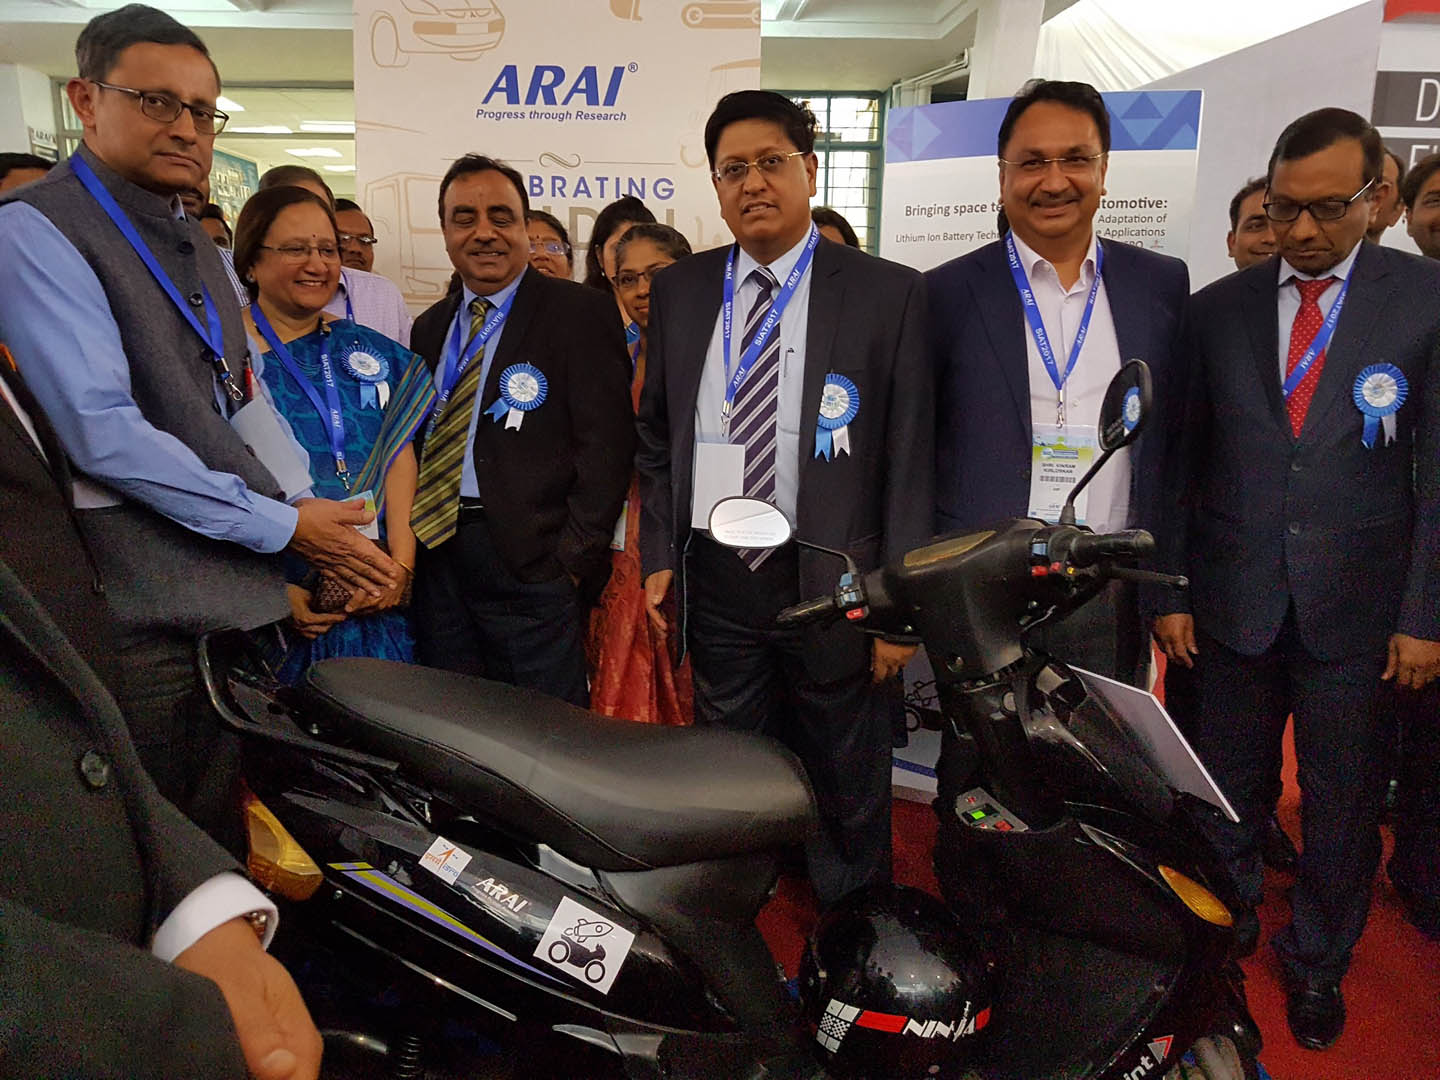 ARAI-ISRO-electric-scooter